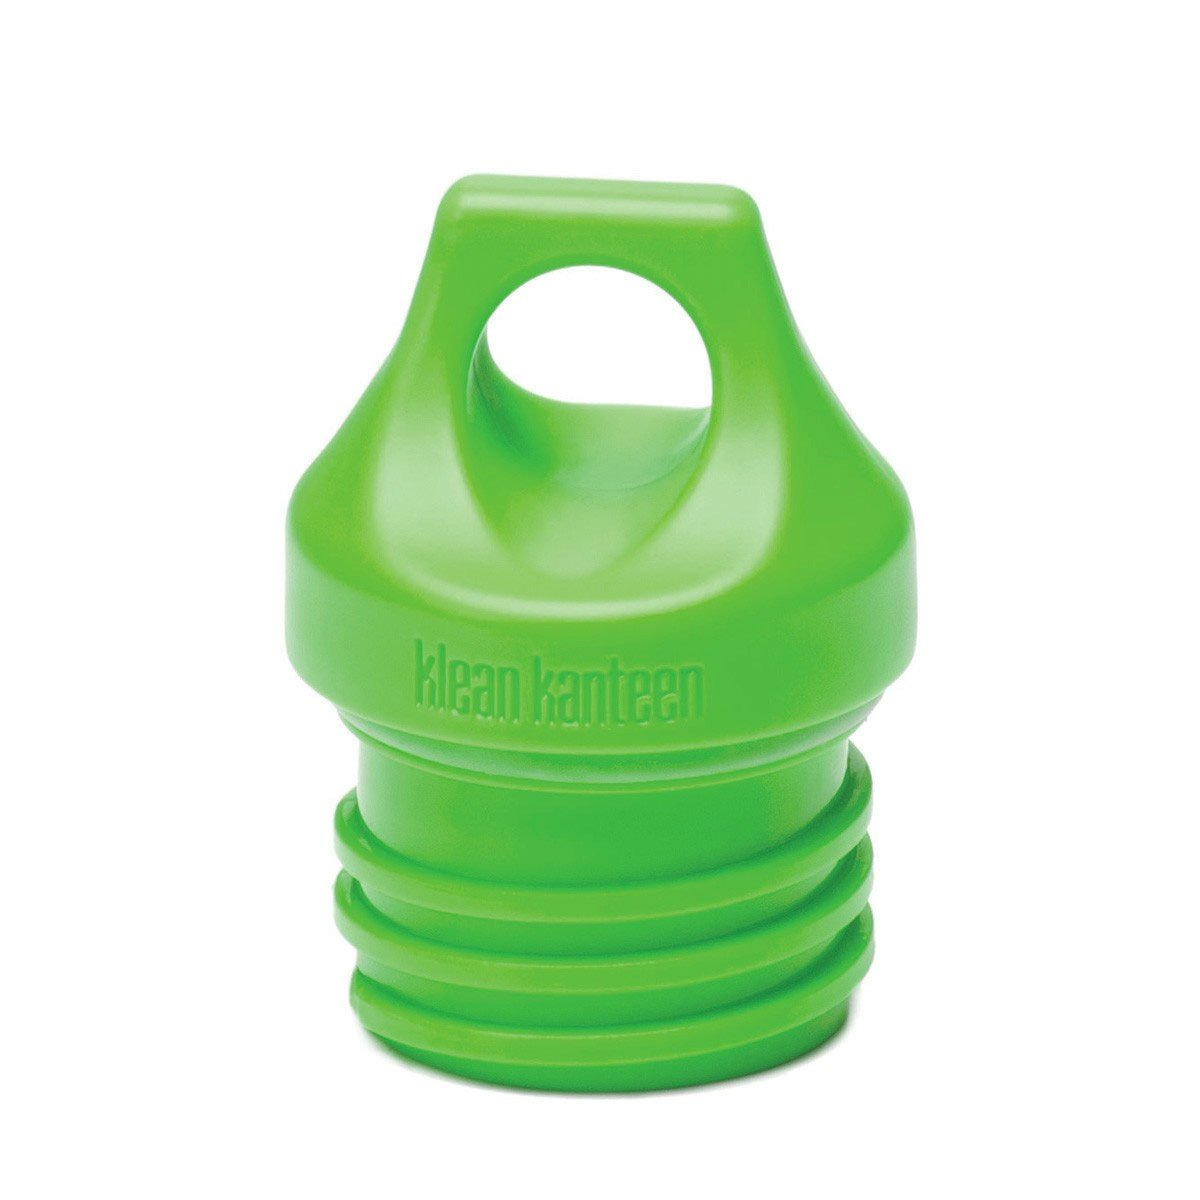 Klean Kanteen Replacement Bottle Caps  Kid Kanteen Loop - Klean Kanteen - Little Earth Nest - 11